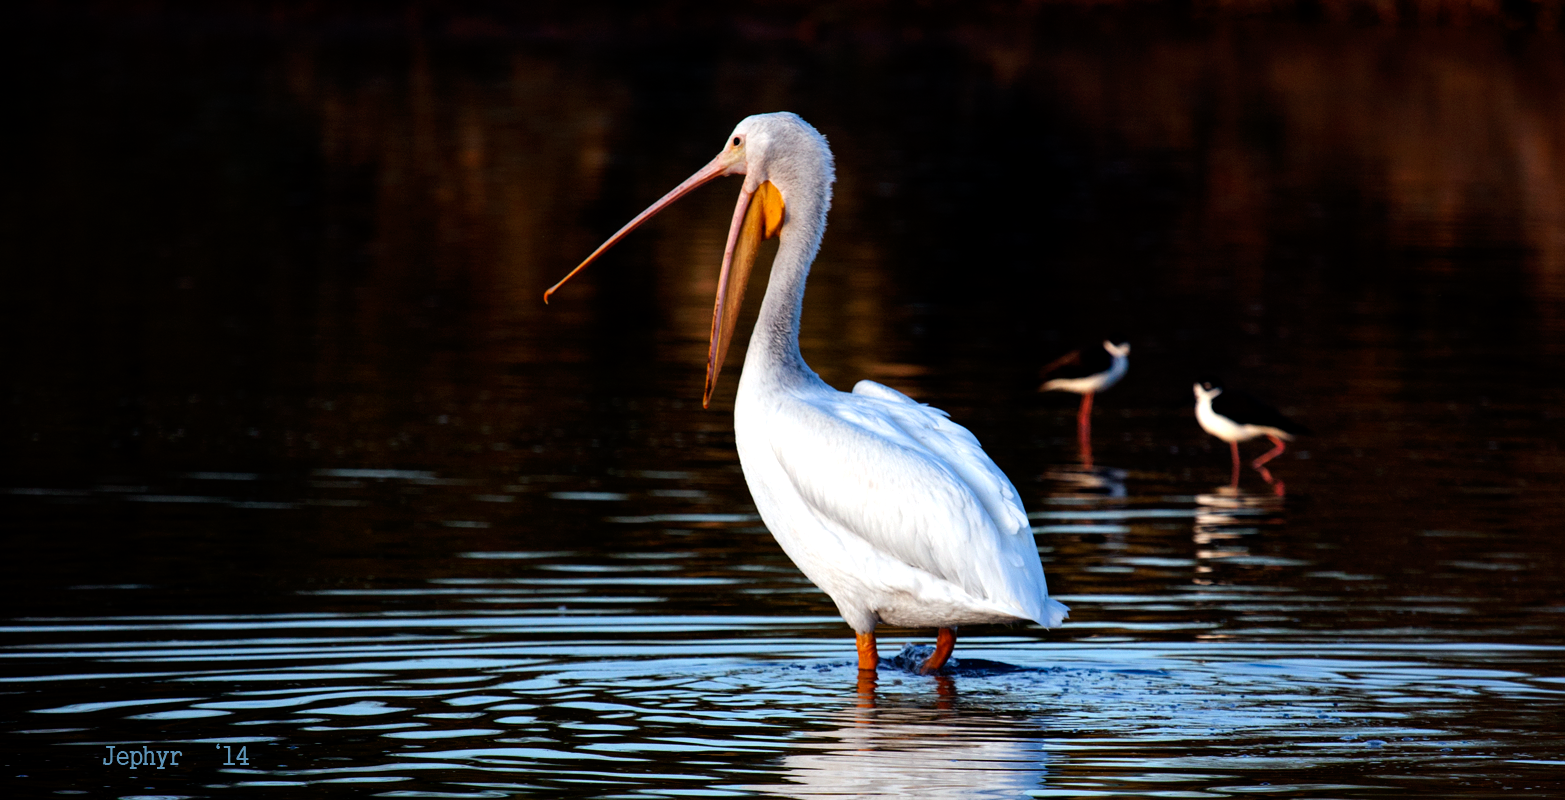 """Preserve Pelican"" - Copyright 2014, Jephyr - All Rights Reserved"